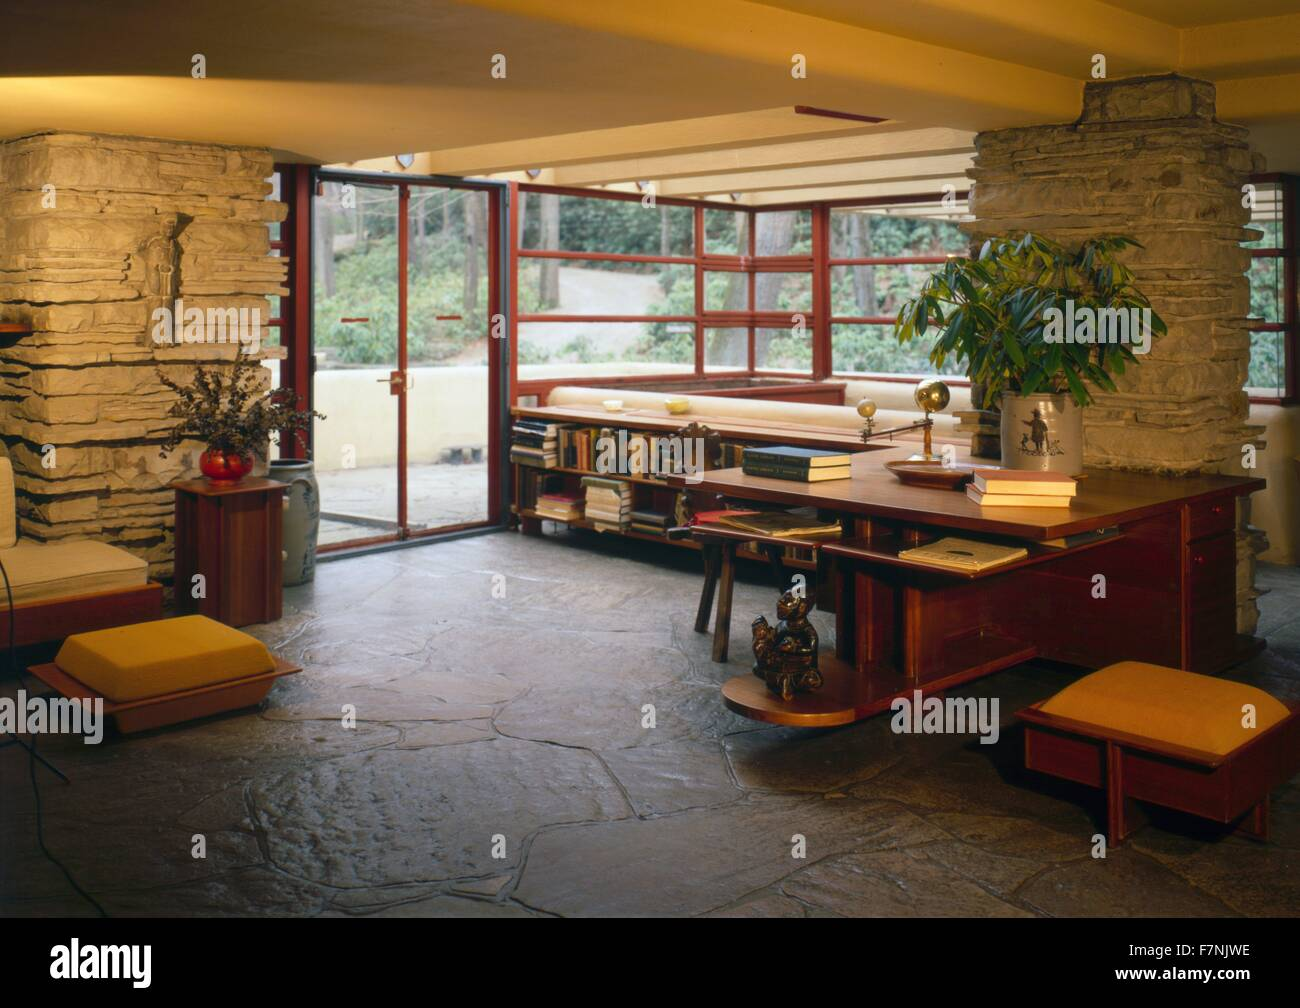 Fallingwater Stock Photos Fallingwater Stock Images Alamy